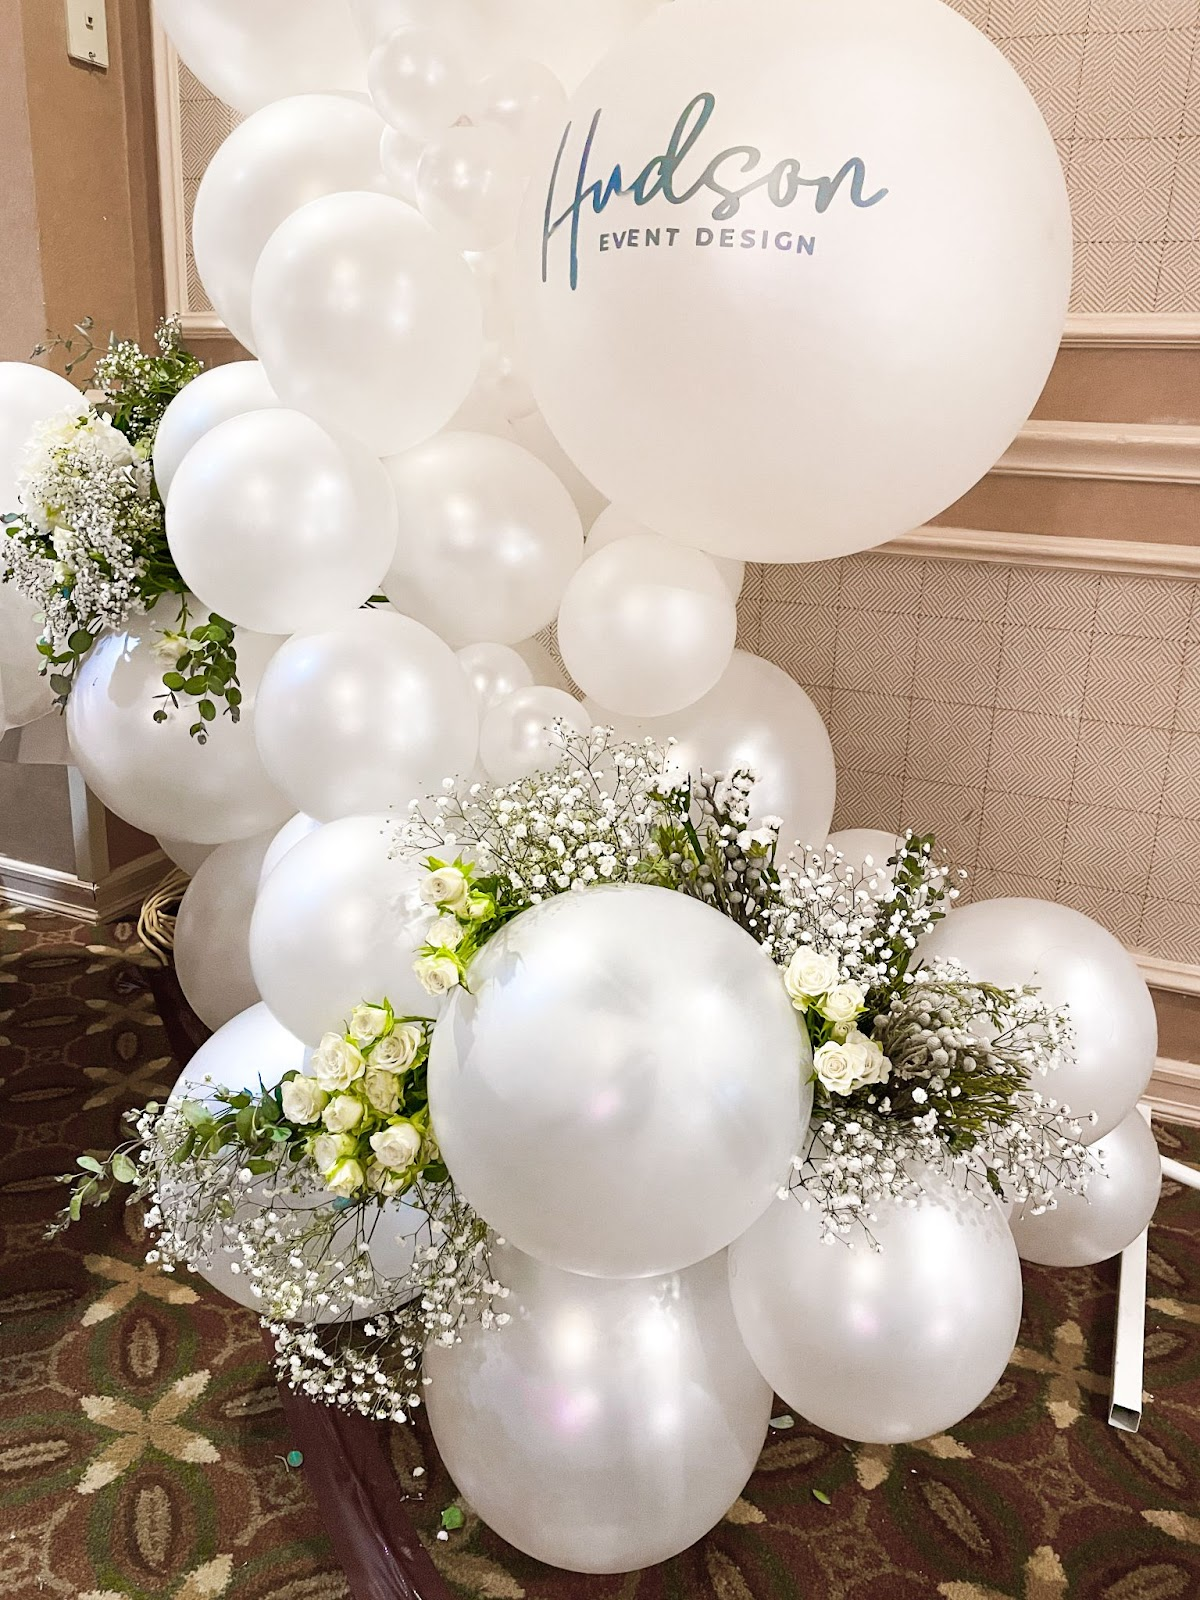 A white balloon garland with eucalyptus and white flowers attached into it